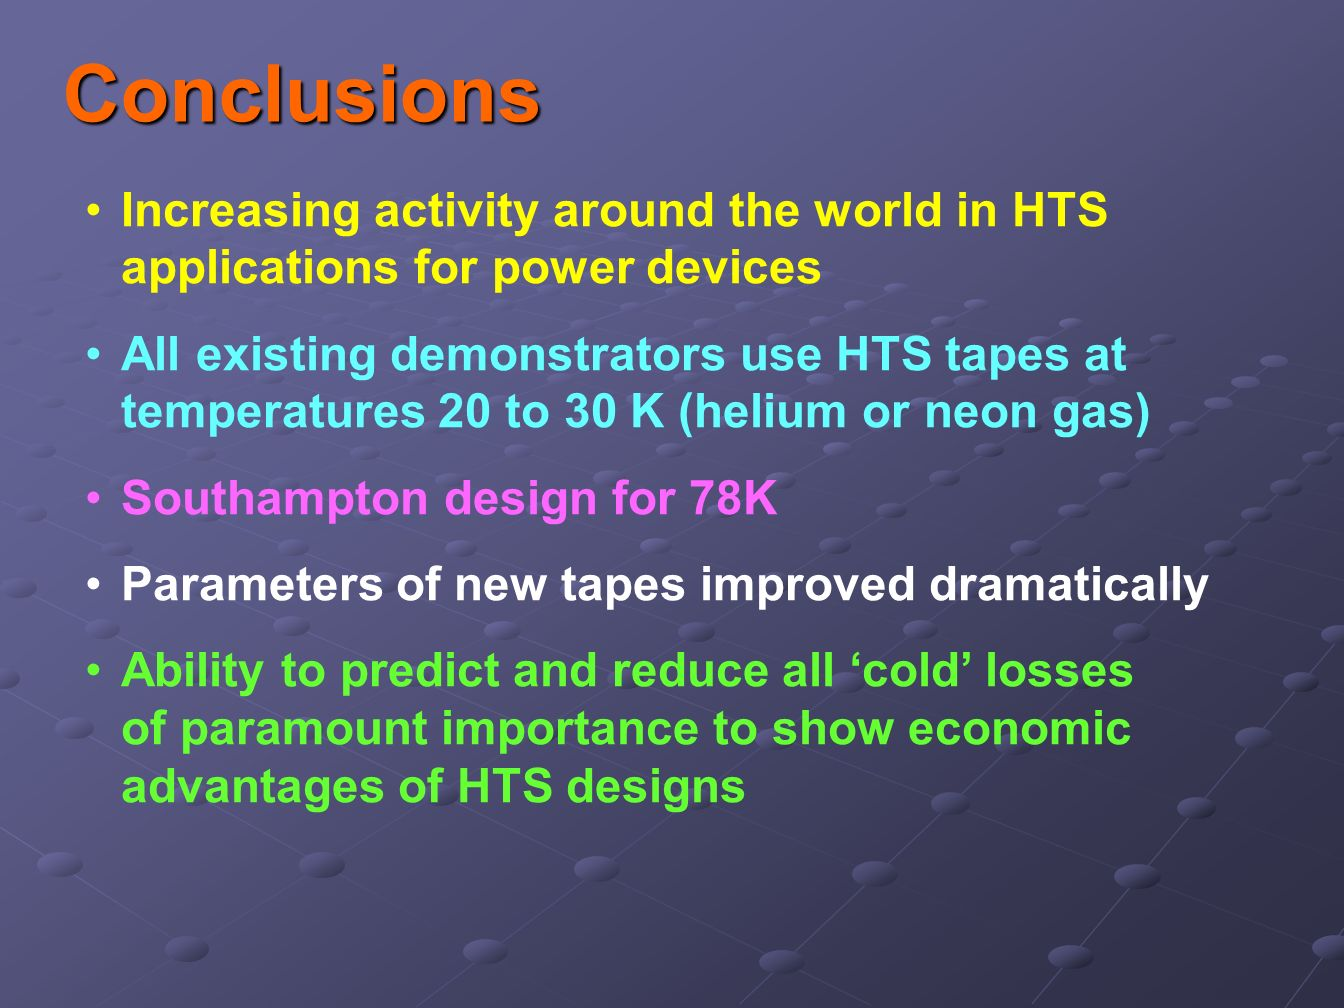 Conclusions Increasing activity around the world in HTS applications for power devices.